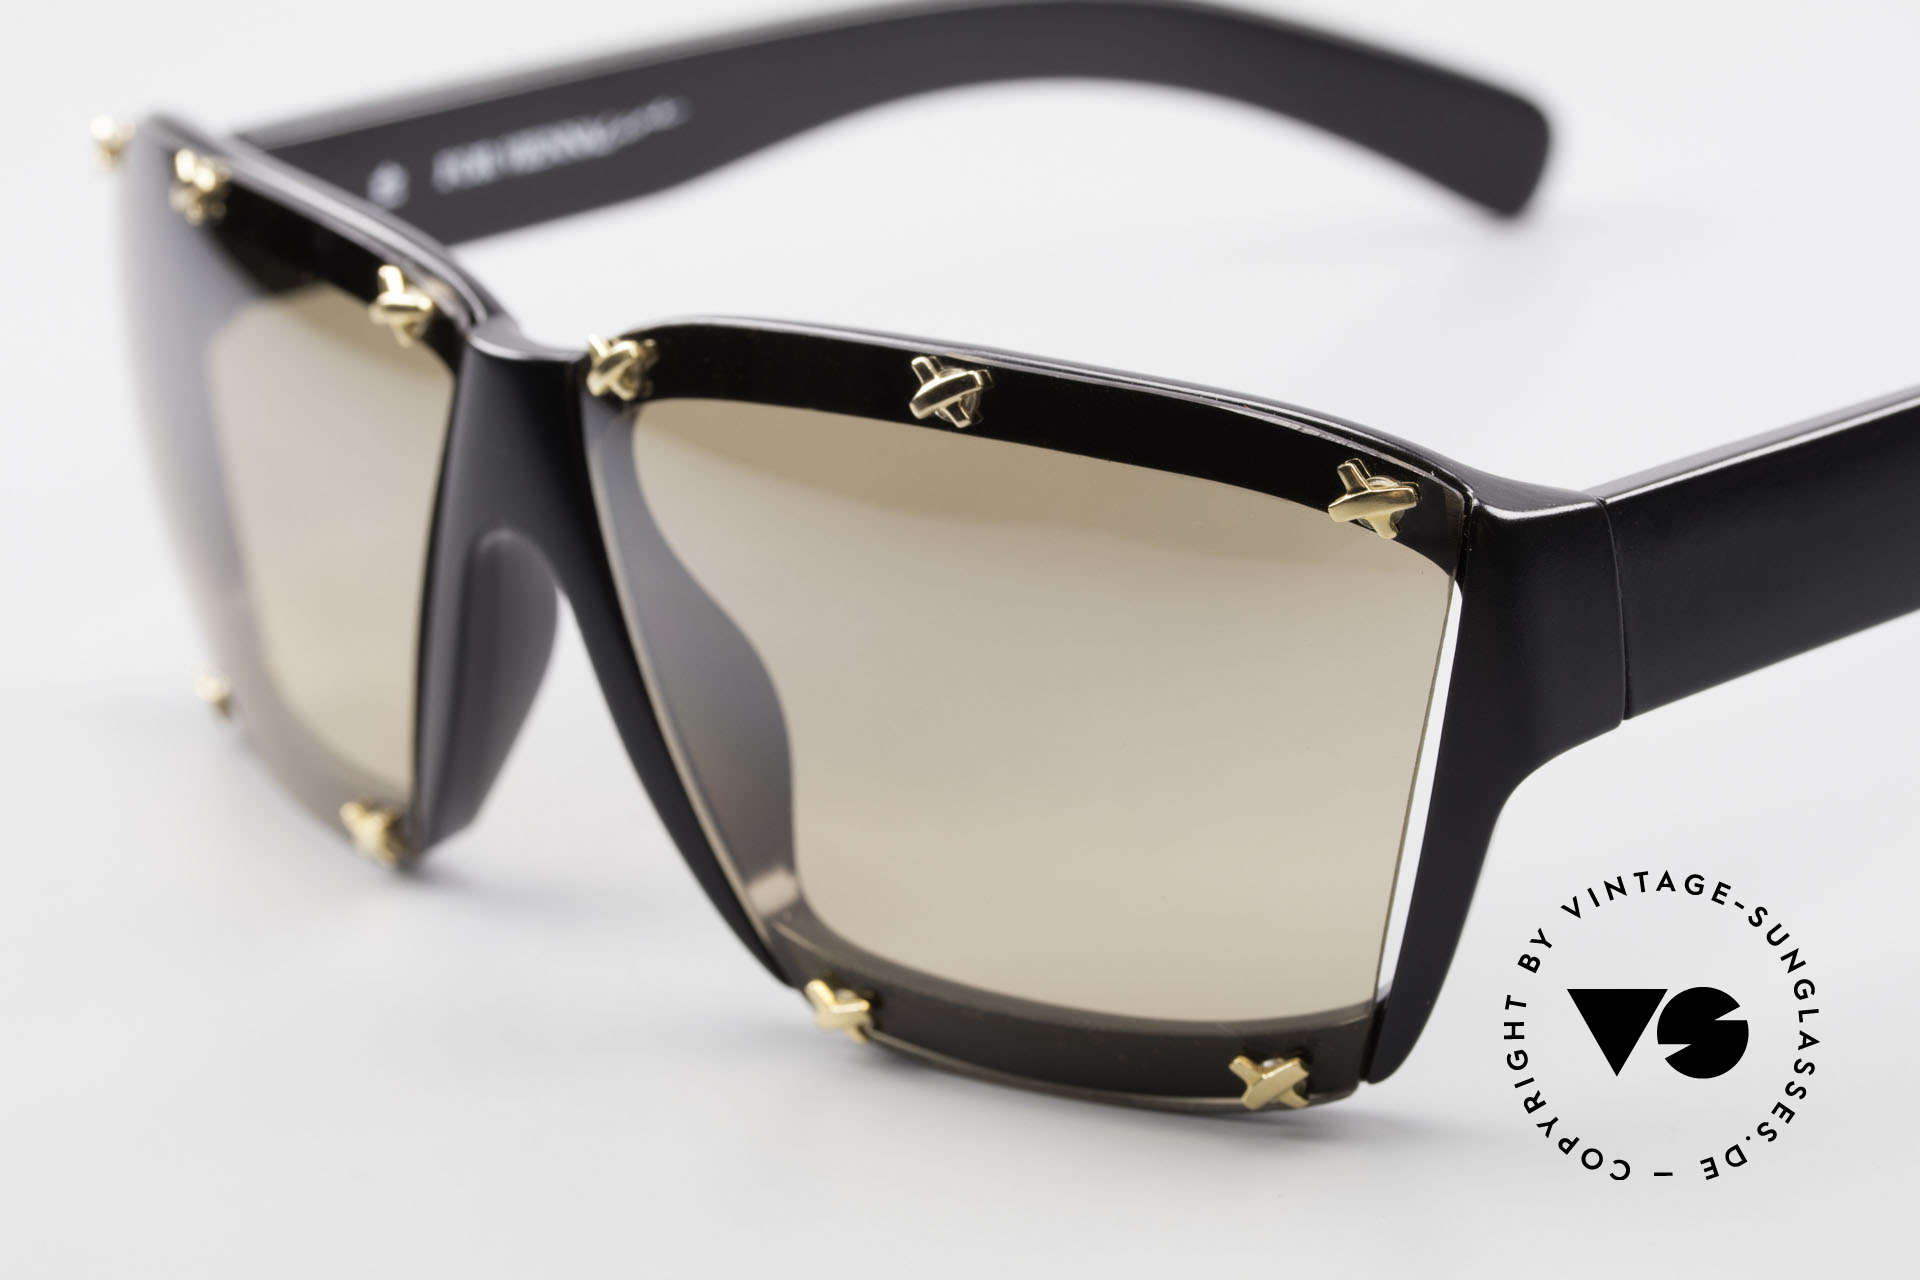 Paloma Picasso 3702 No Retro Sunglasses True 90's, the incredible Optyl material does not seem to age, Made for Women